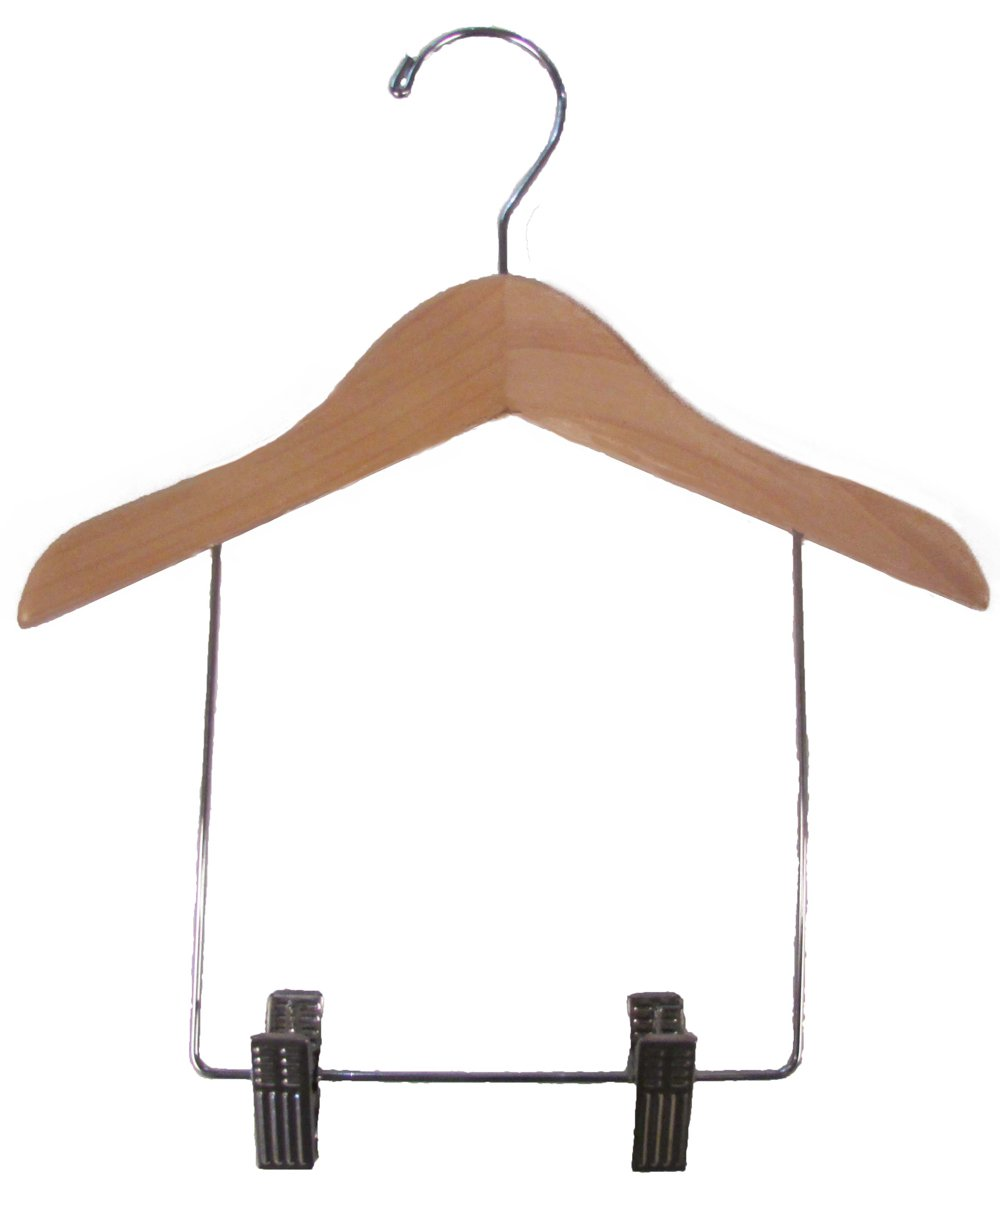 Children's Wooden Display hanger with Matte Natural Finish by The Great American Hanger Company